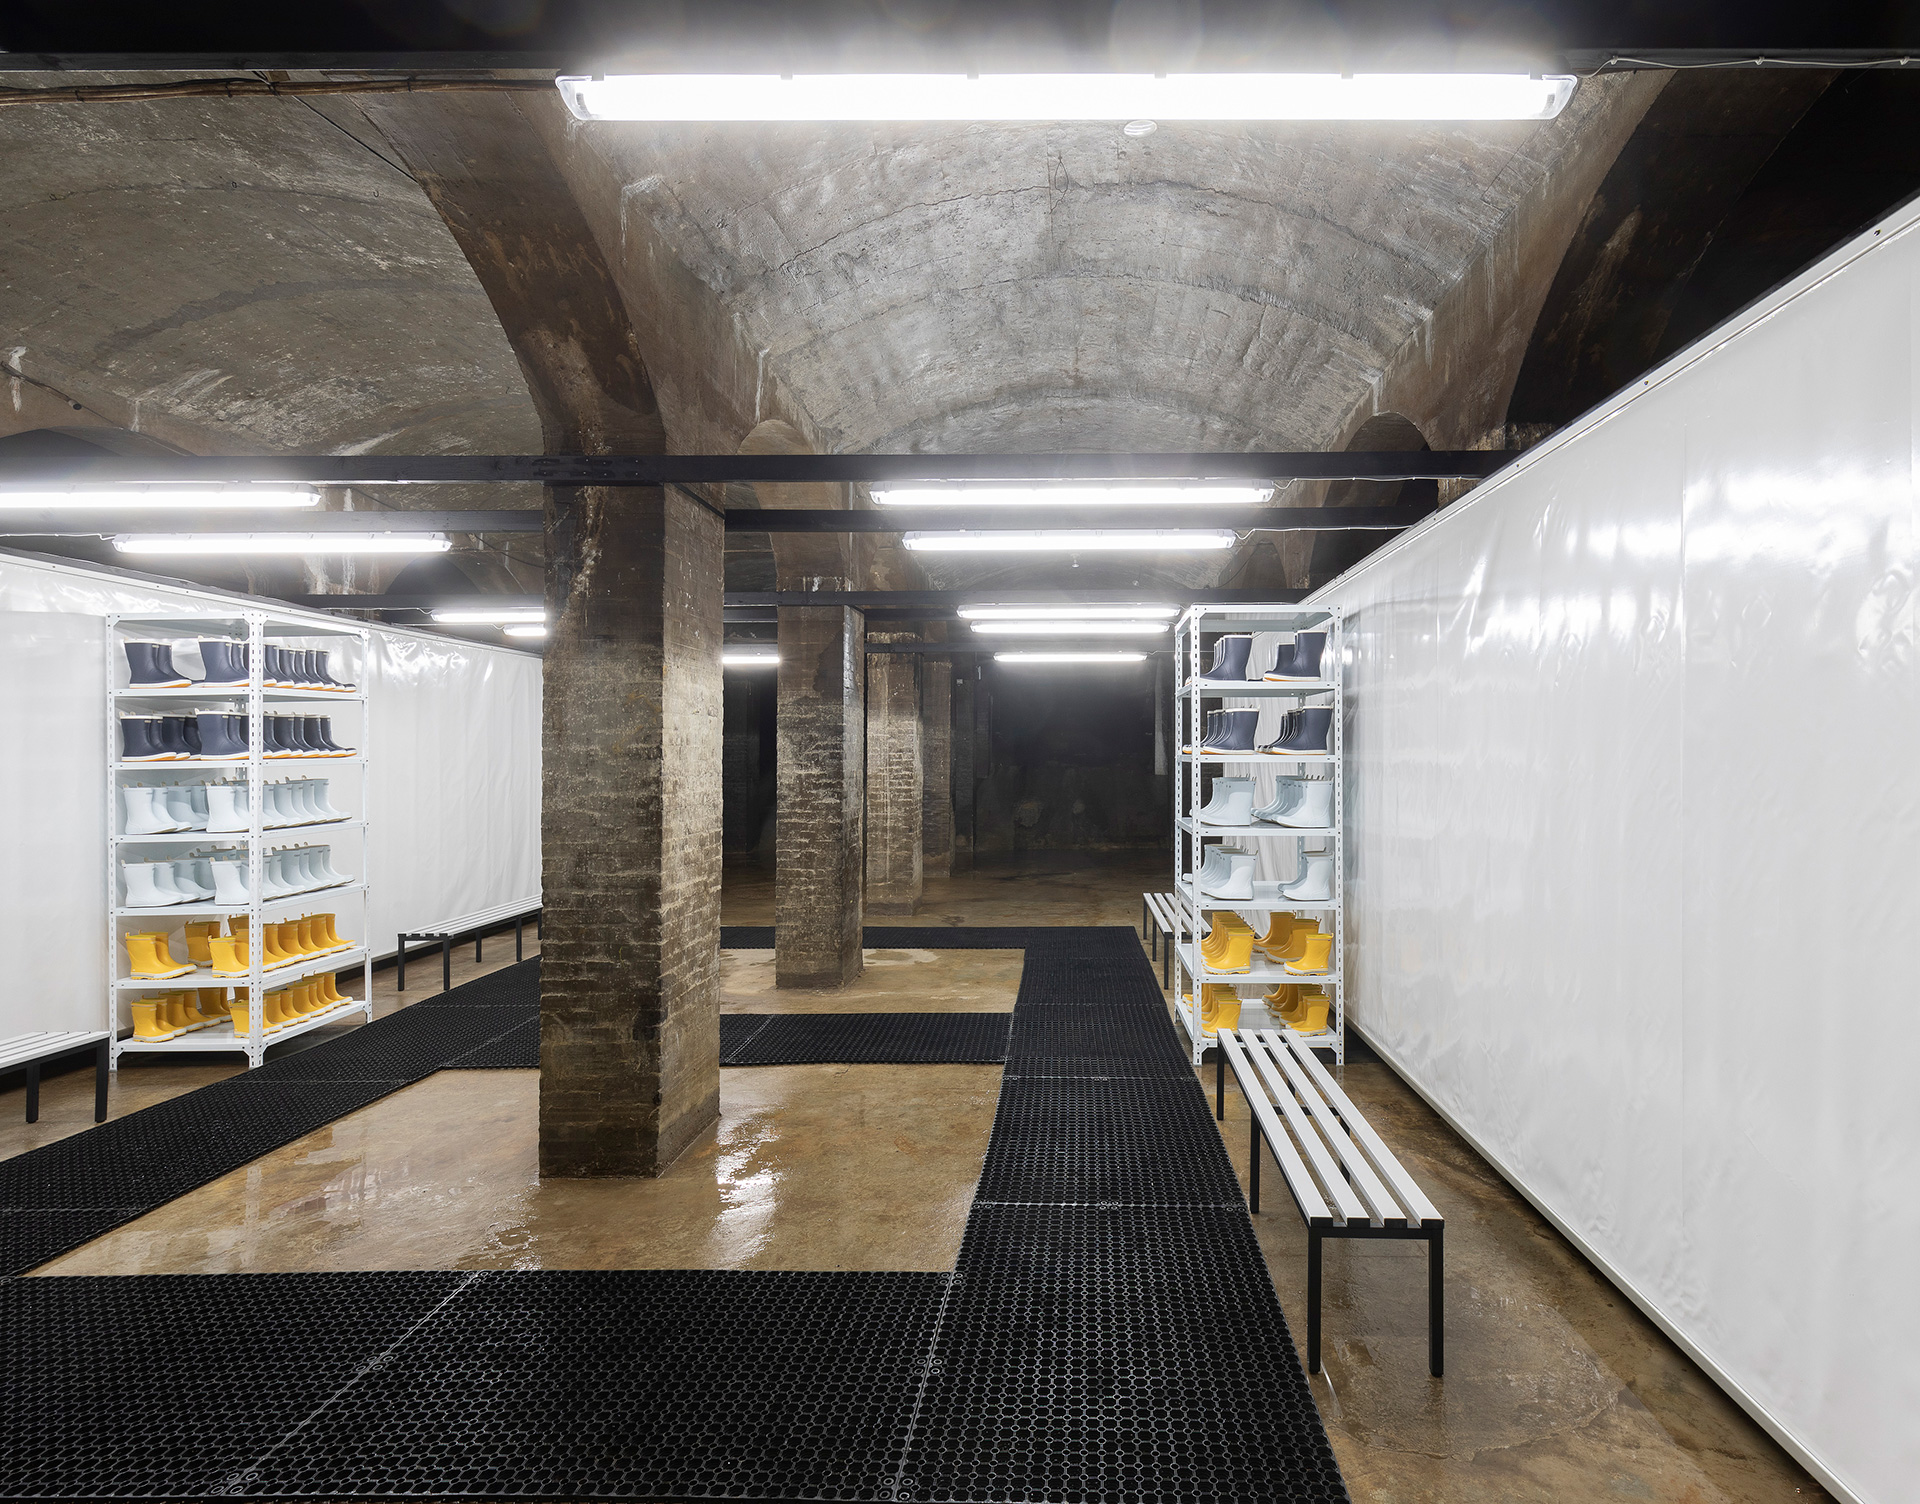 The changing room where viewers are encouraged to wear protective rubber boots, as part of the Installation It is not the end of the world at Cisternerne, Copenhagen | SUPERFLEX | STIRworld